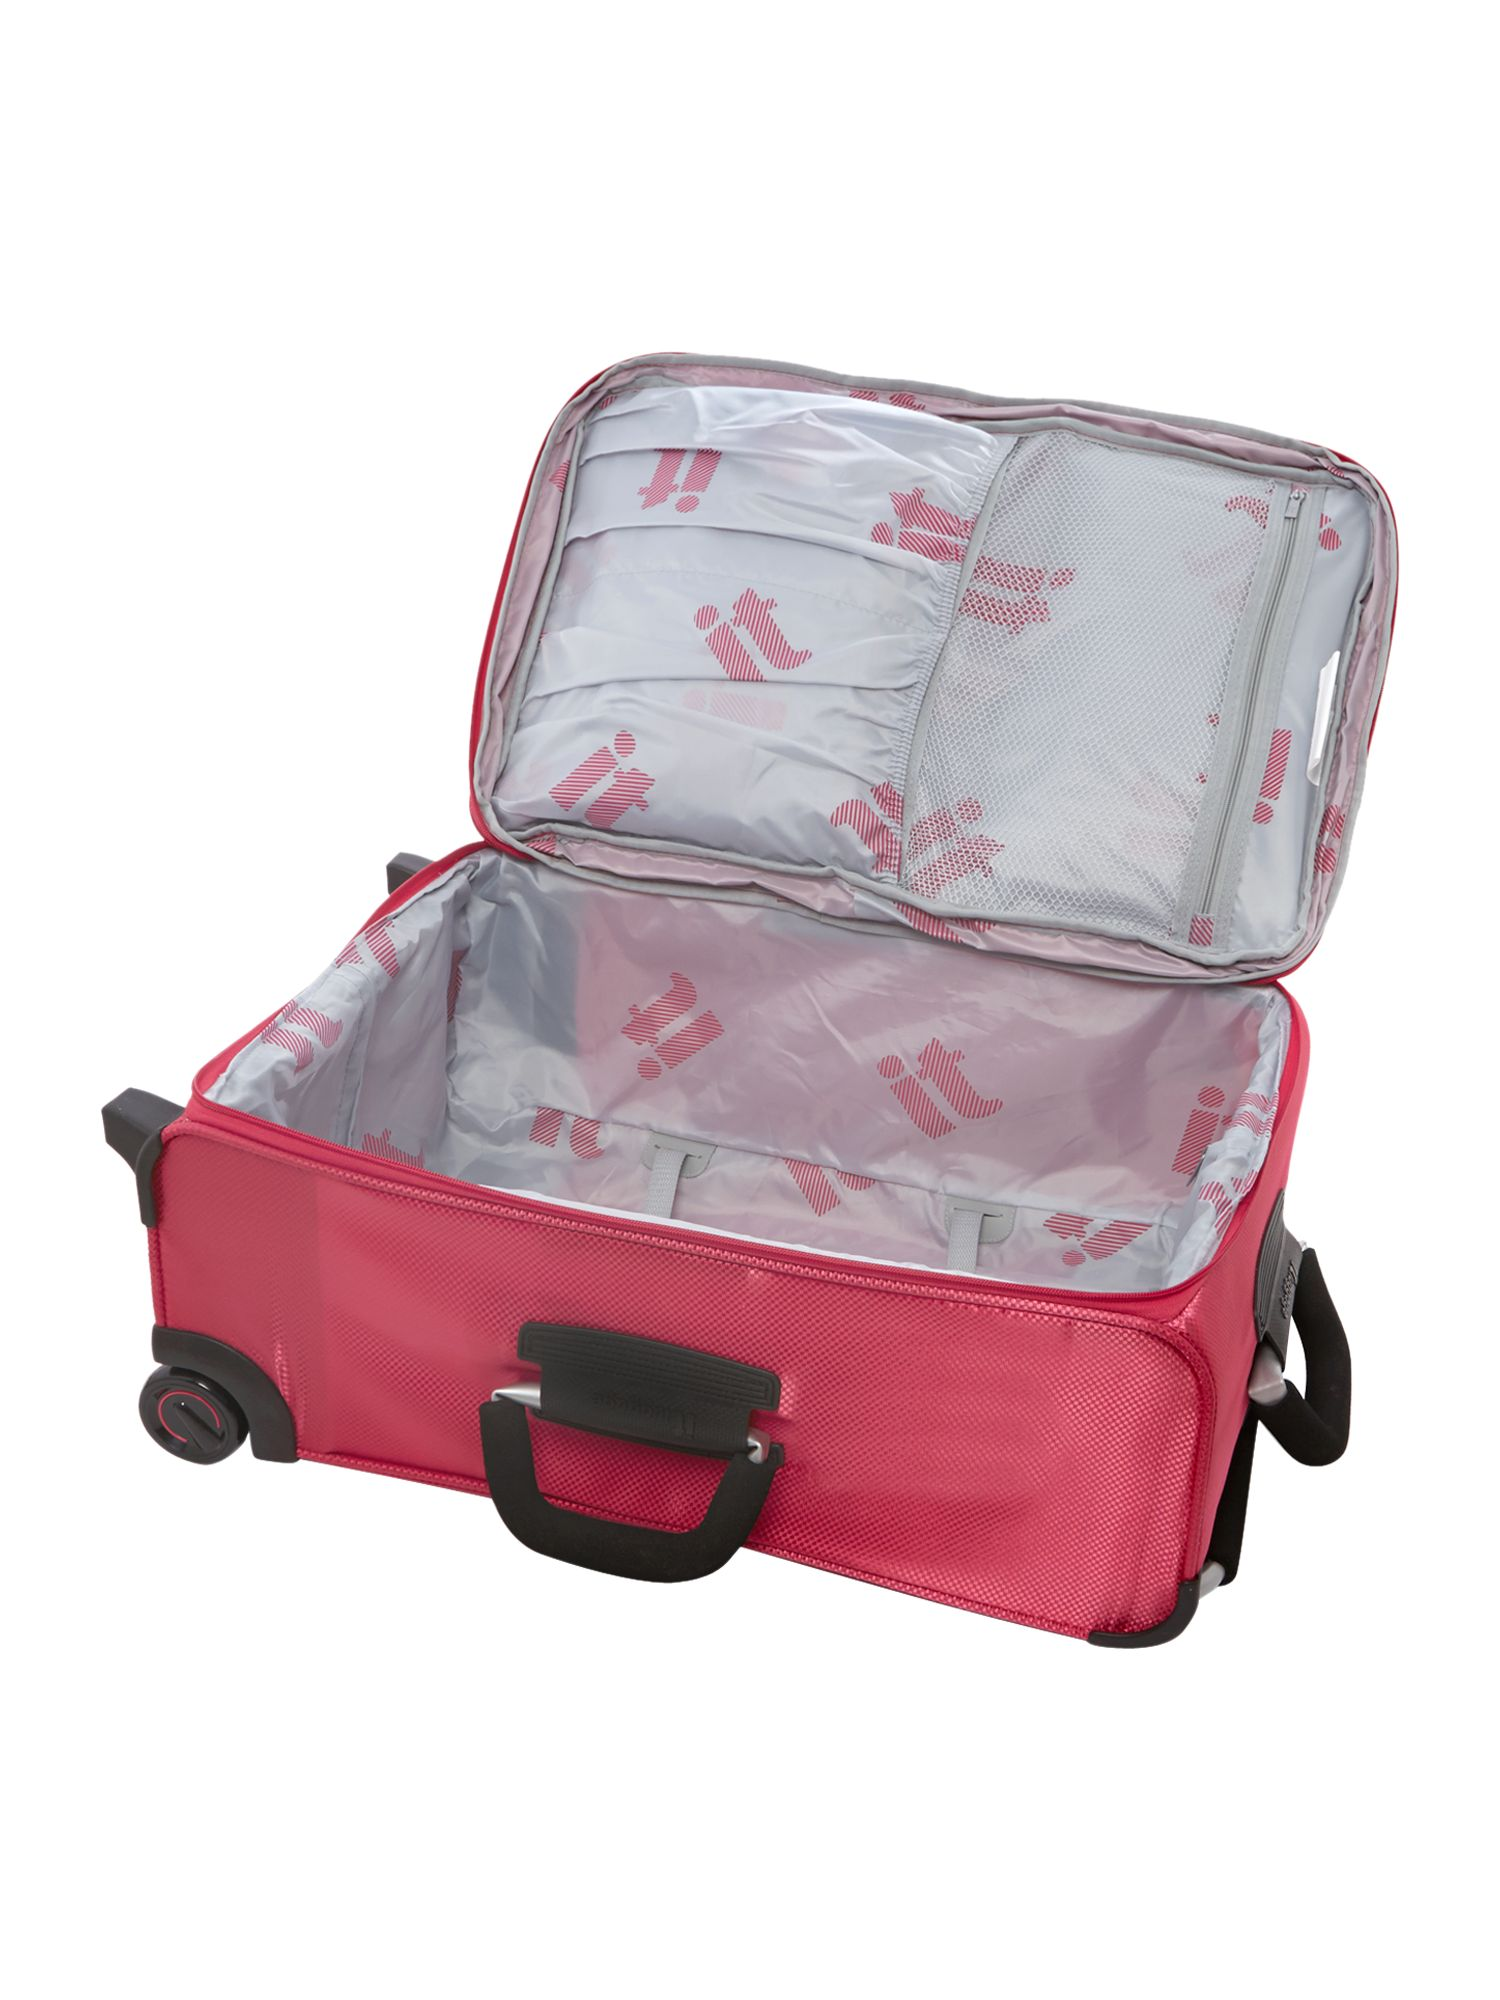 IT pink 2 wheels soft medium suitcase